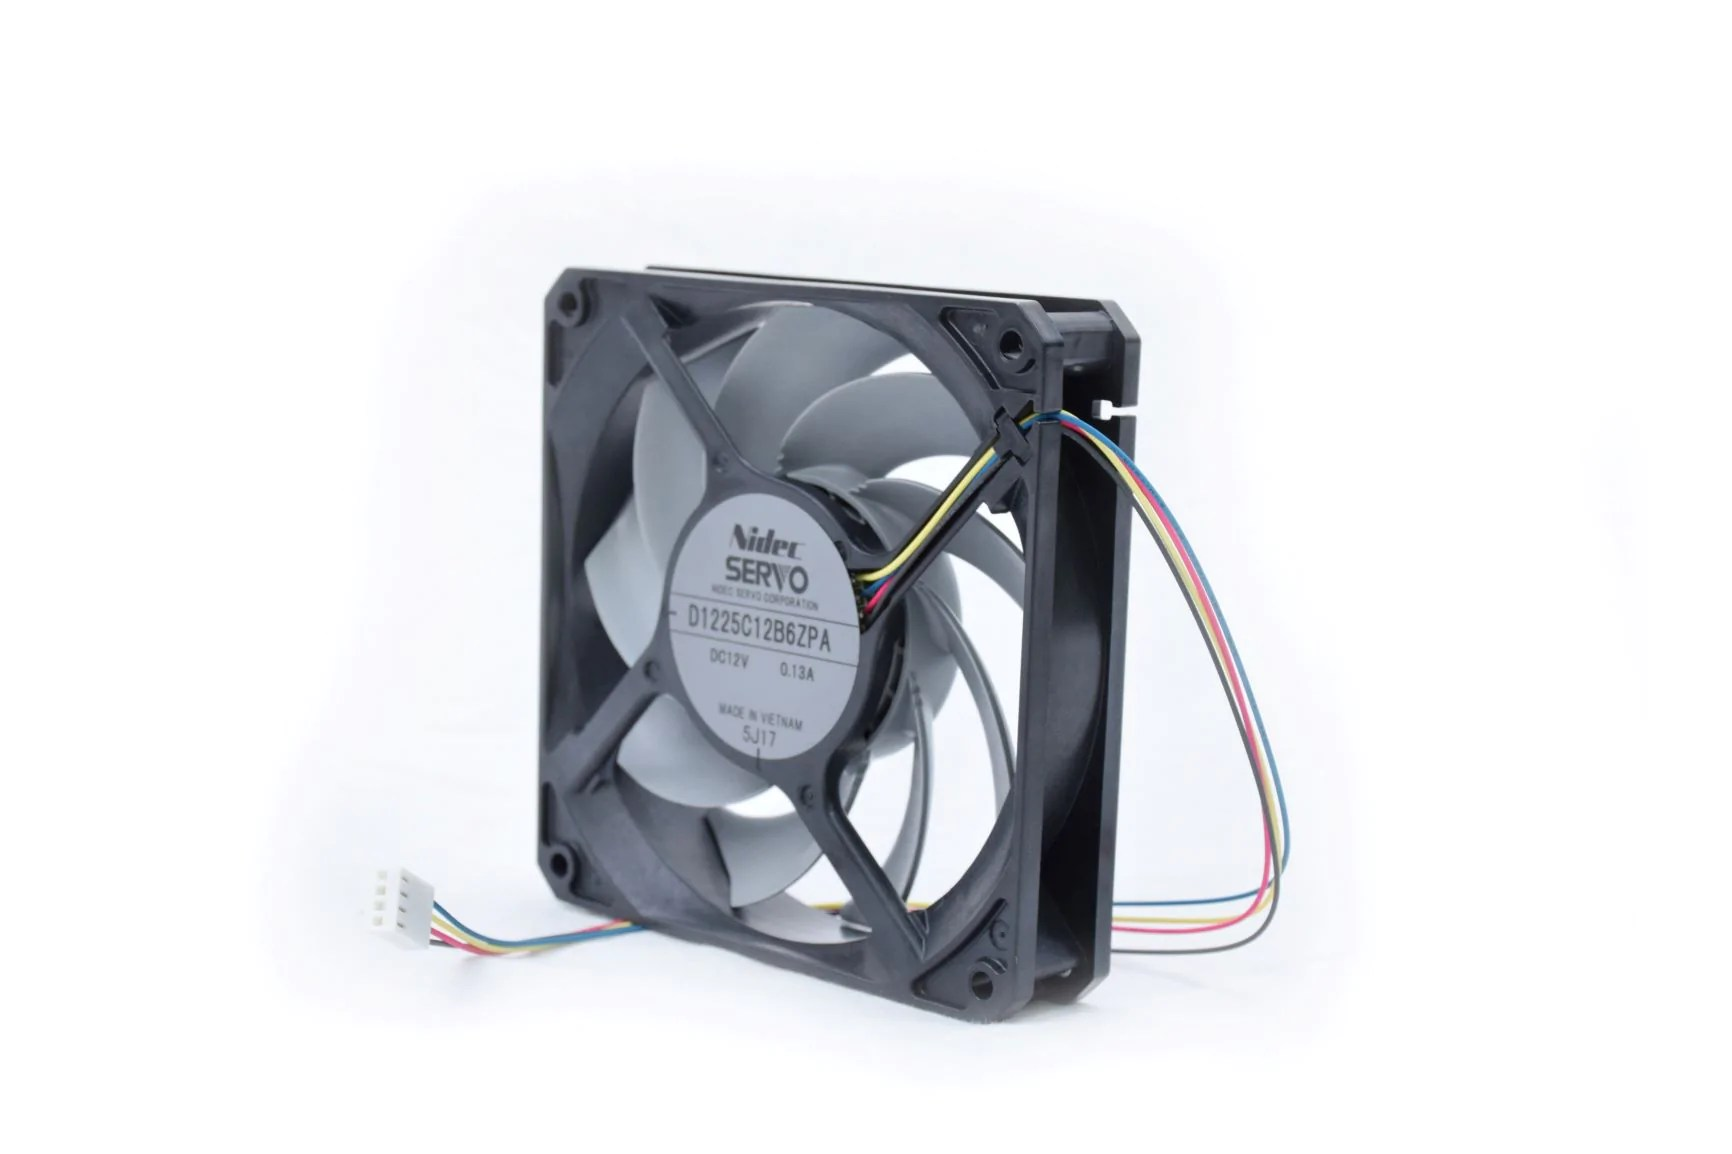 gentletyphoon 120x120x25mm silent case fan series d1225c12b [ 1732 x 1154 Pixel ]